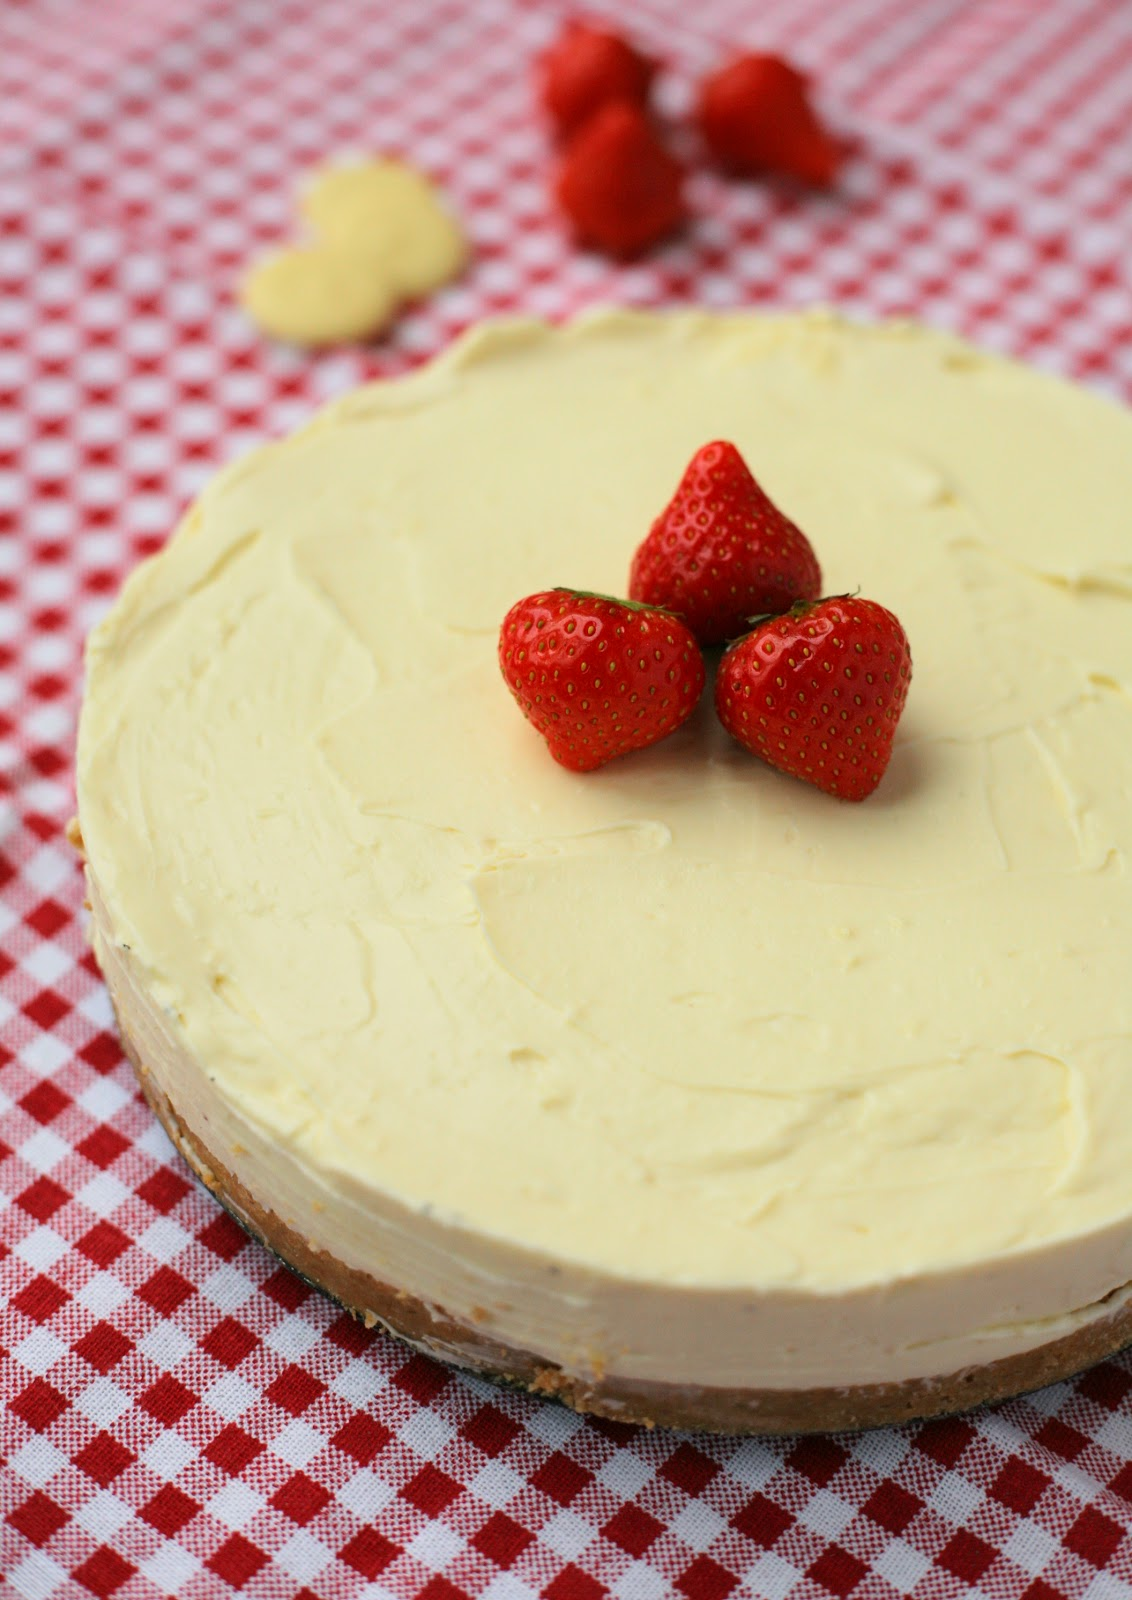 Easy No Bake White Chocolate Cheesecake, the perfect ending to a romantic meal or dinner party. www.goodfoodshared.blogspot.com